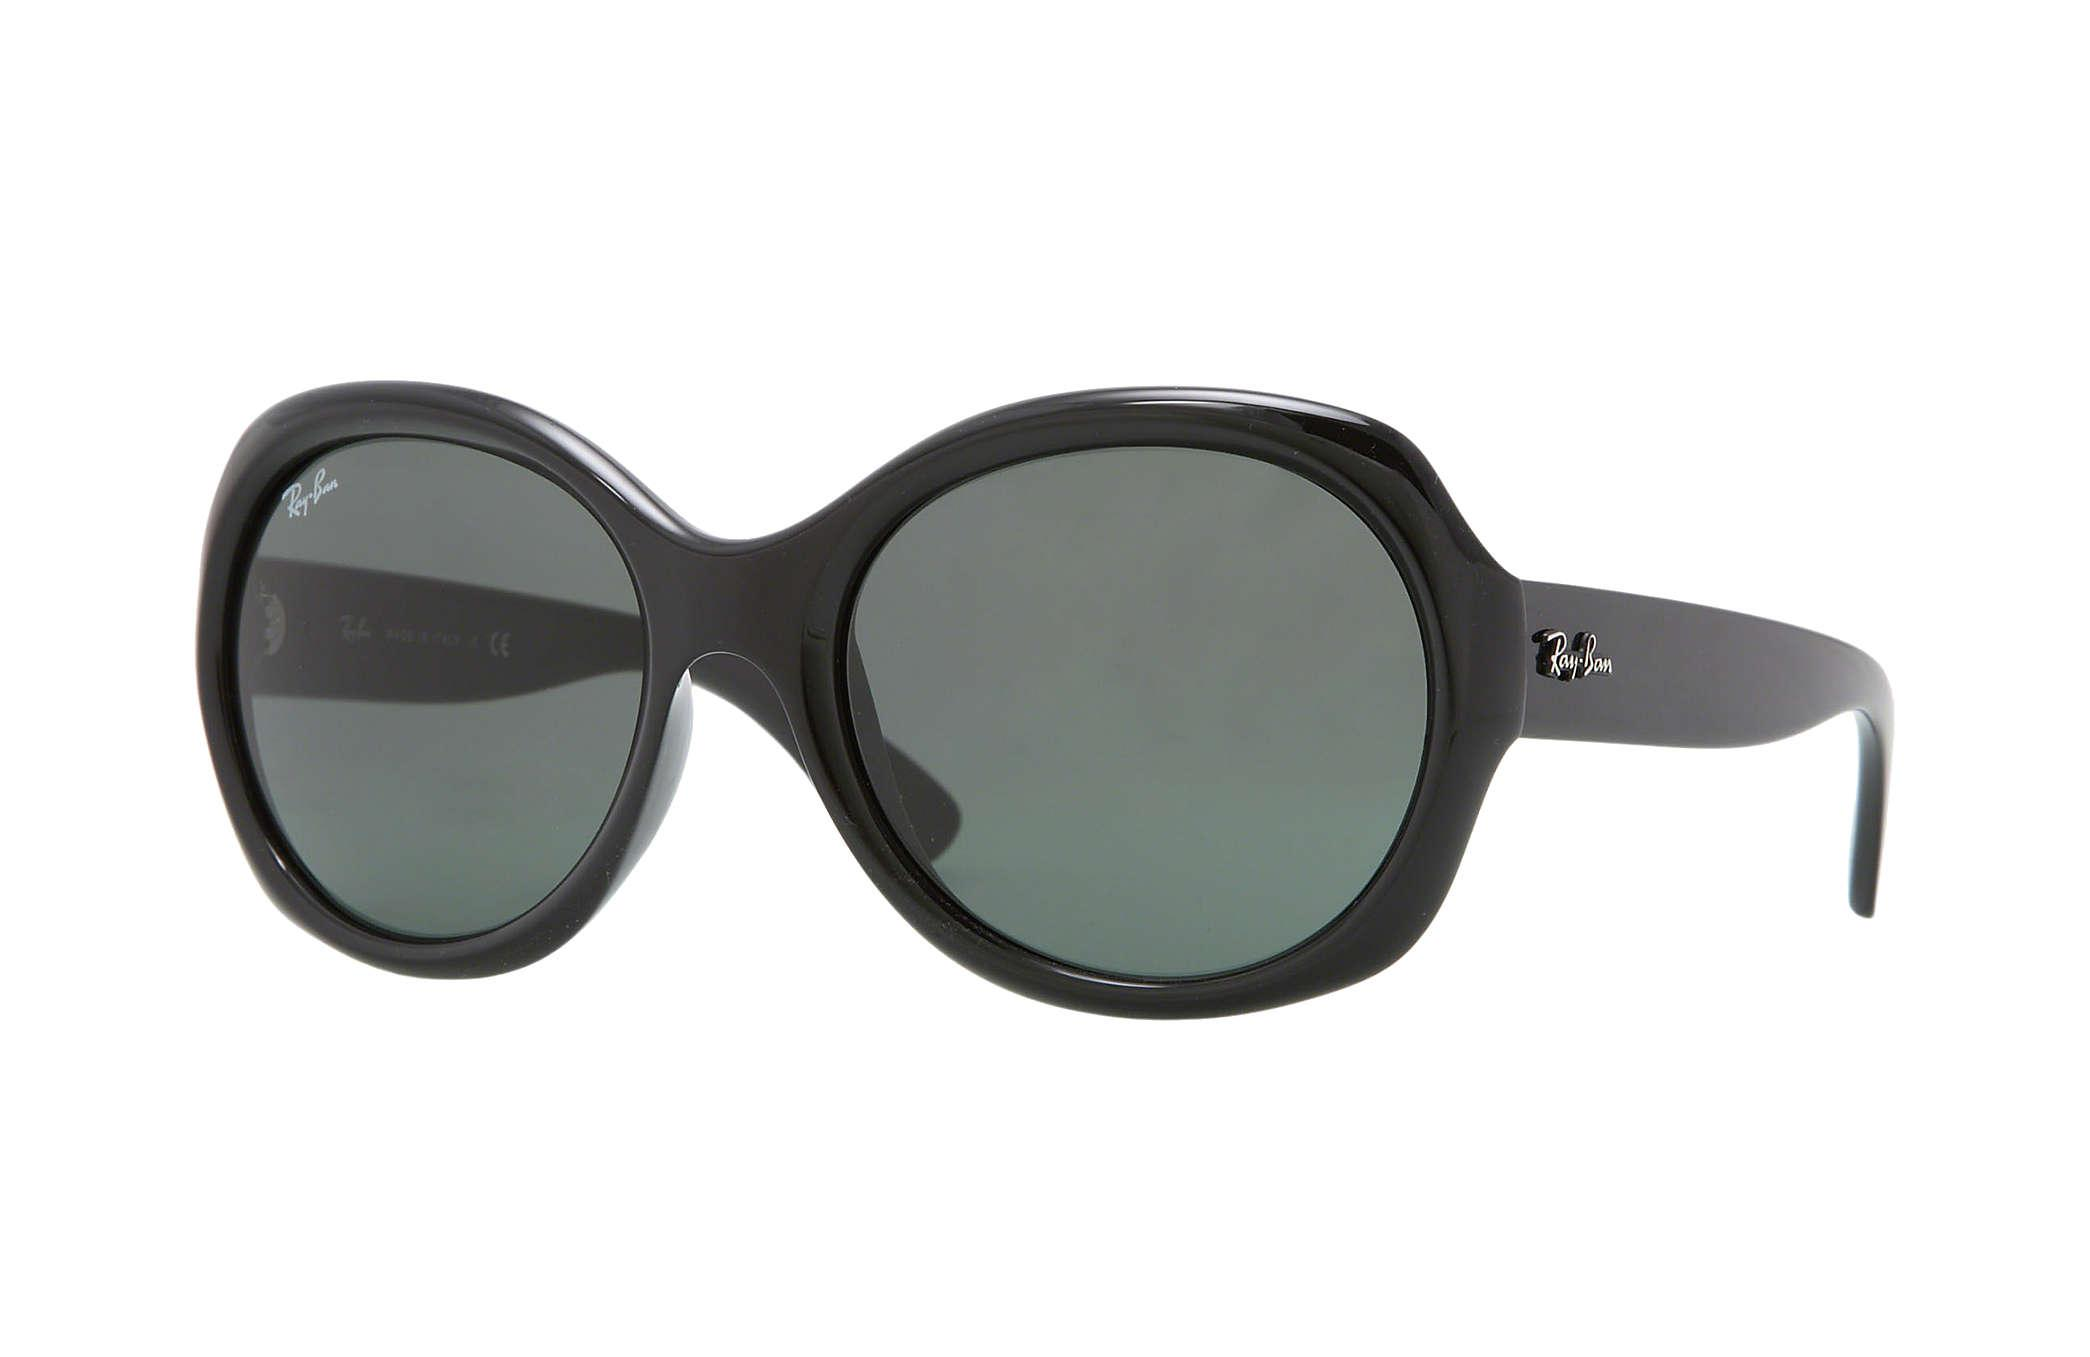 8a3ade92e1 Ray-Ban Rb4191 in Black - Lyst